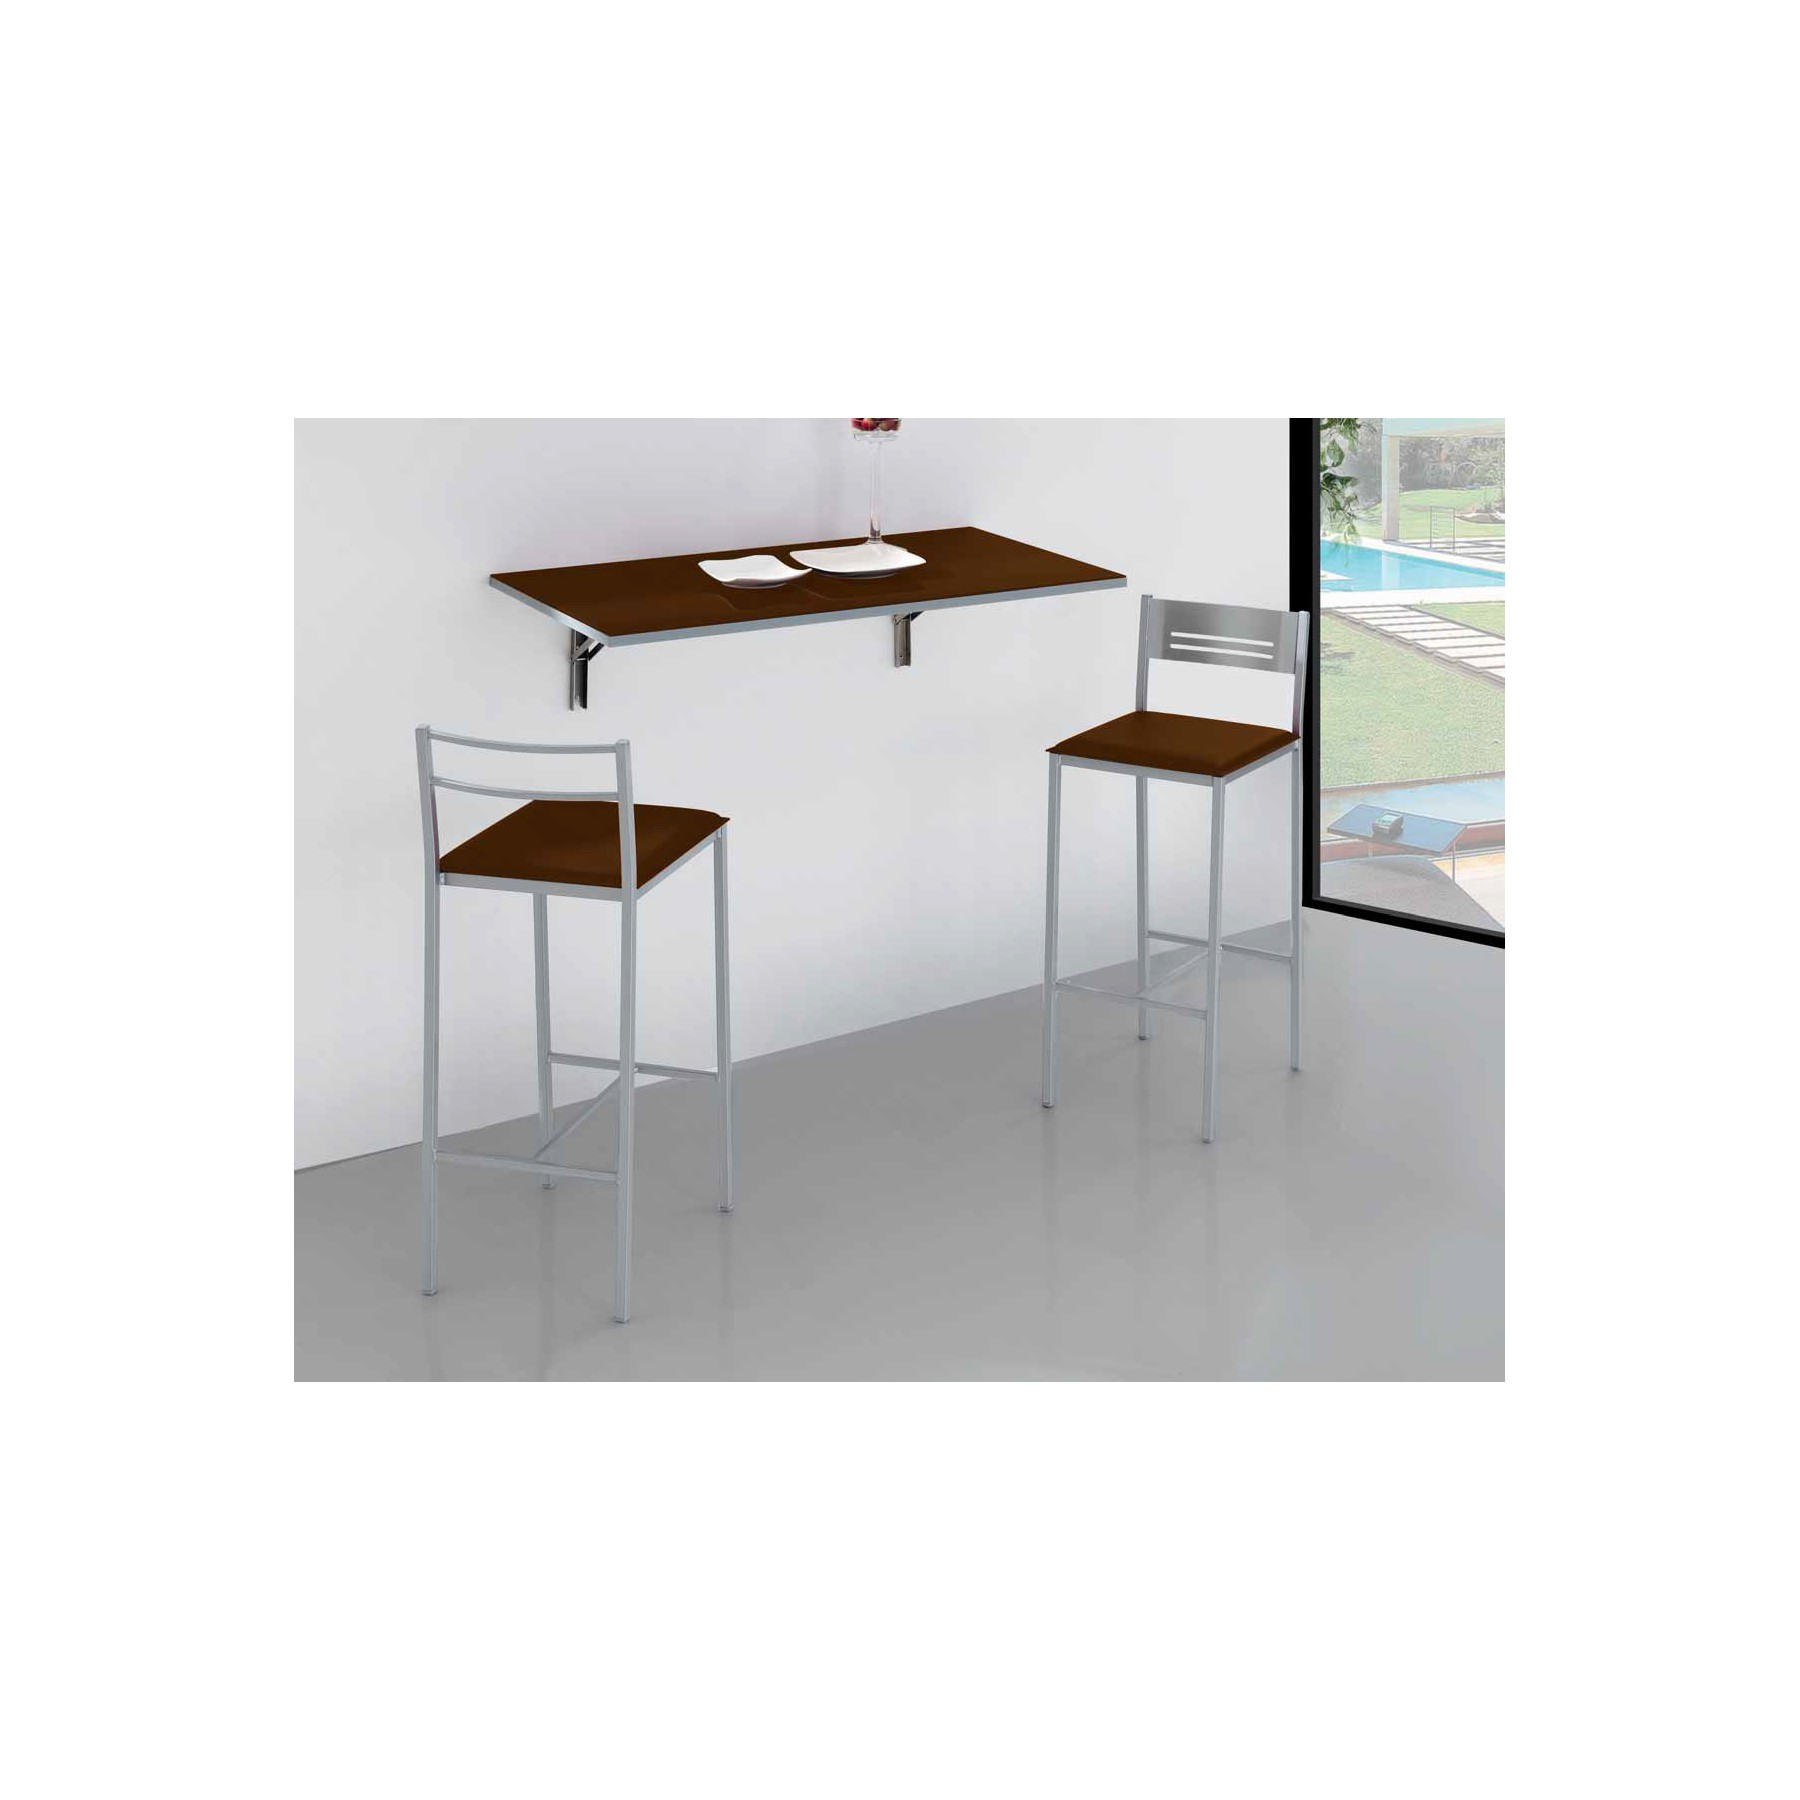 mesa de cocina de pared plegable simple dkg On mesa plegable pared cocina